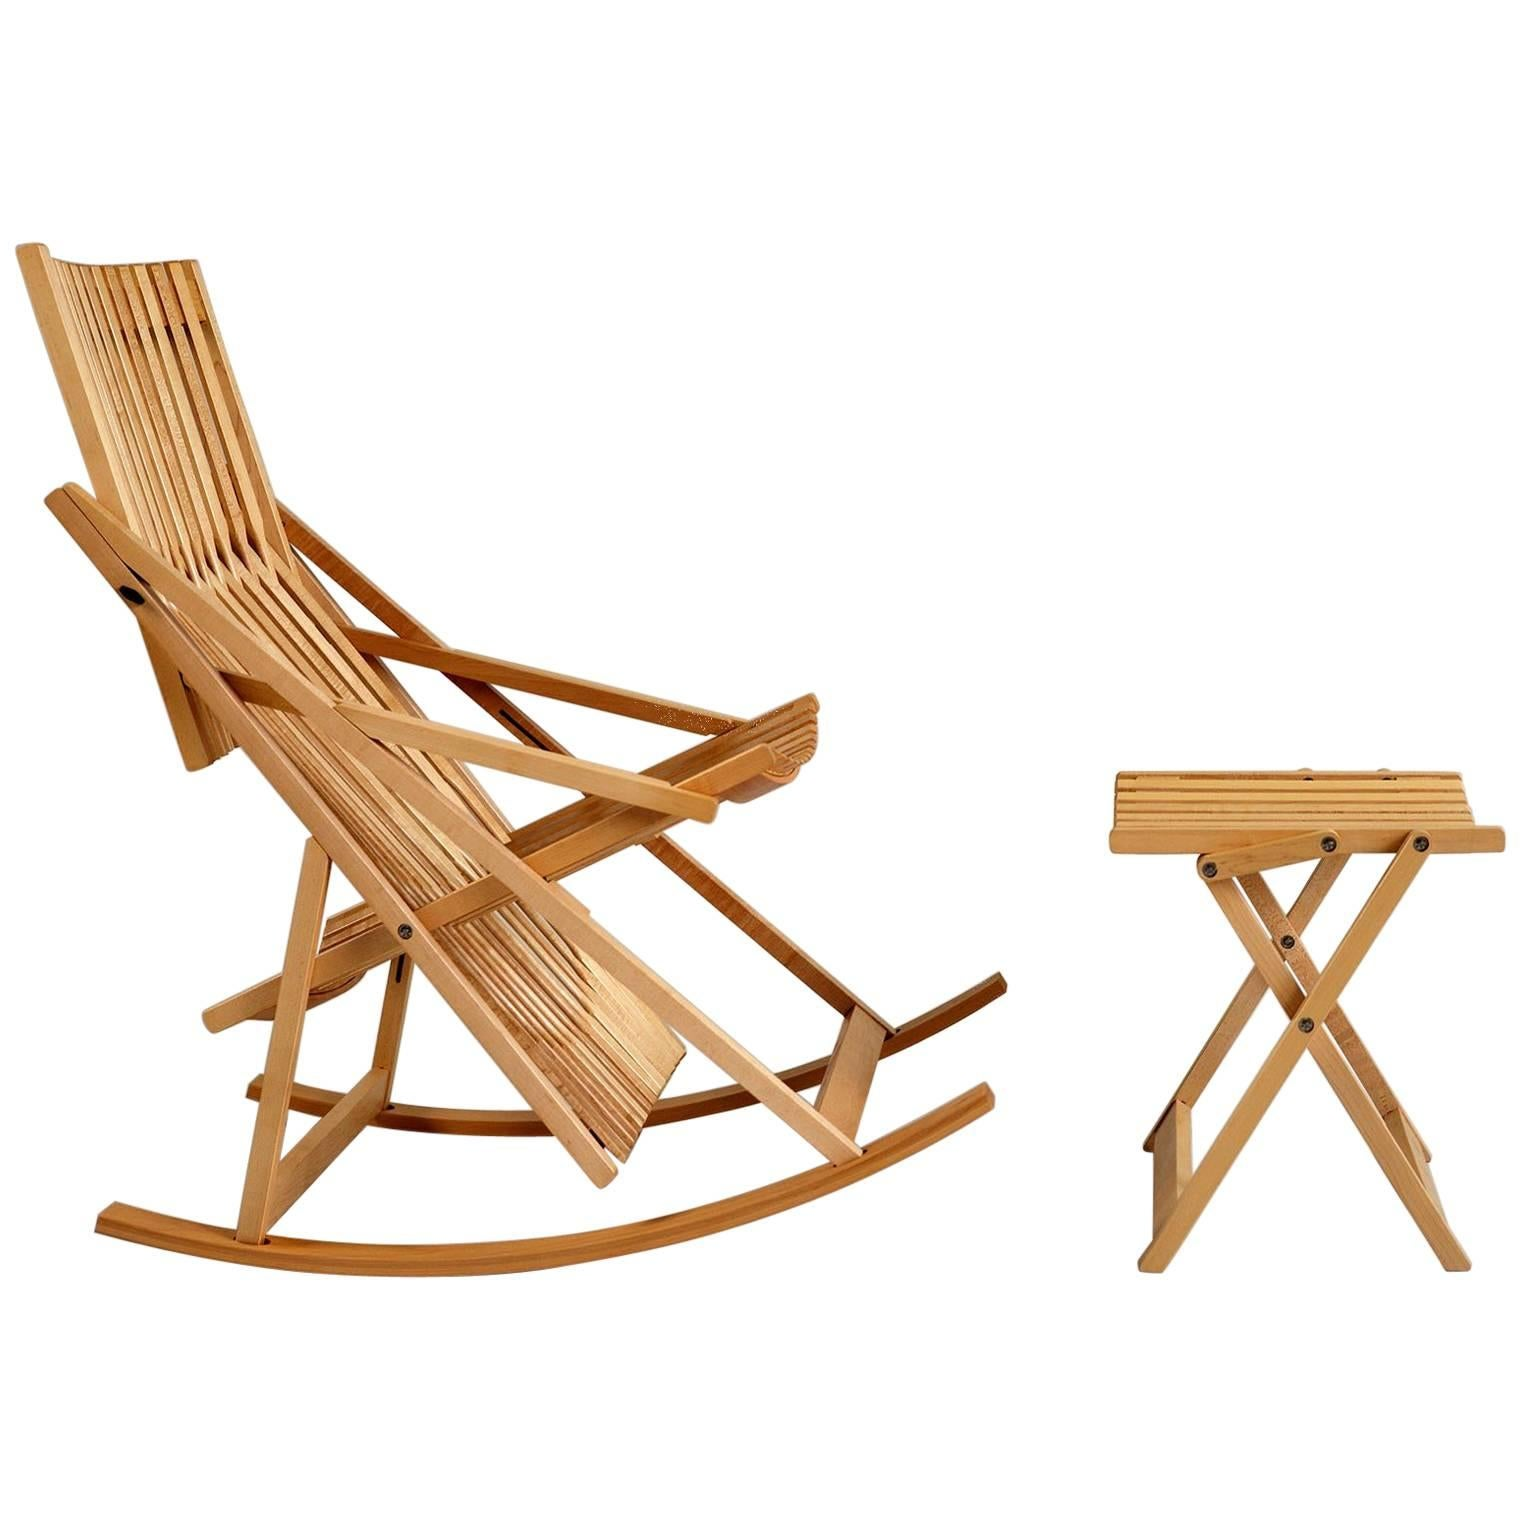 Jean-Claude Duboys, A1 Rocking Chair and Ottoman A4, France, 1980